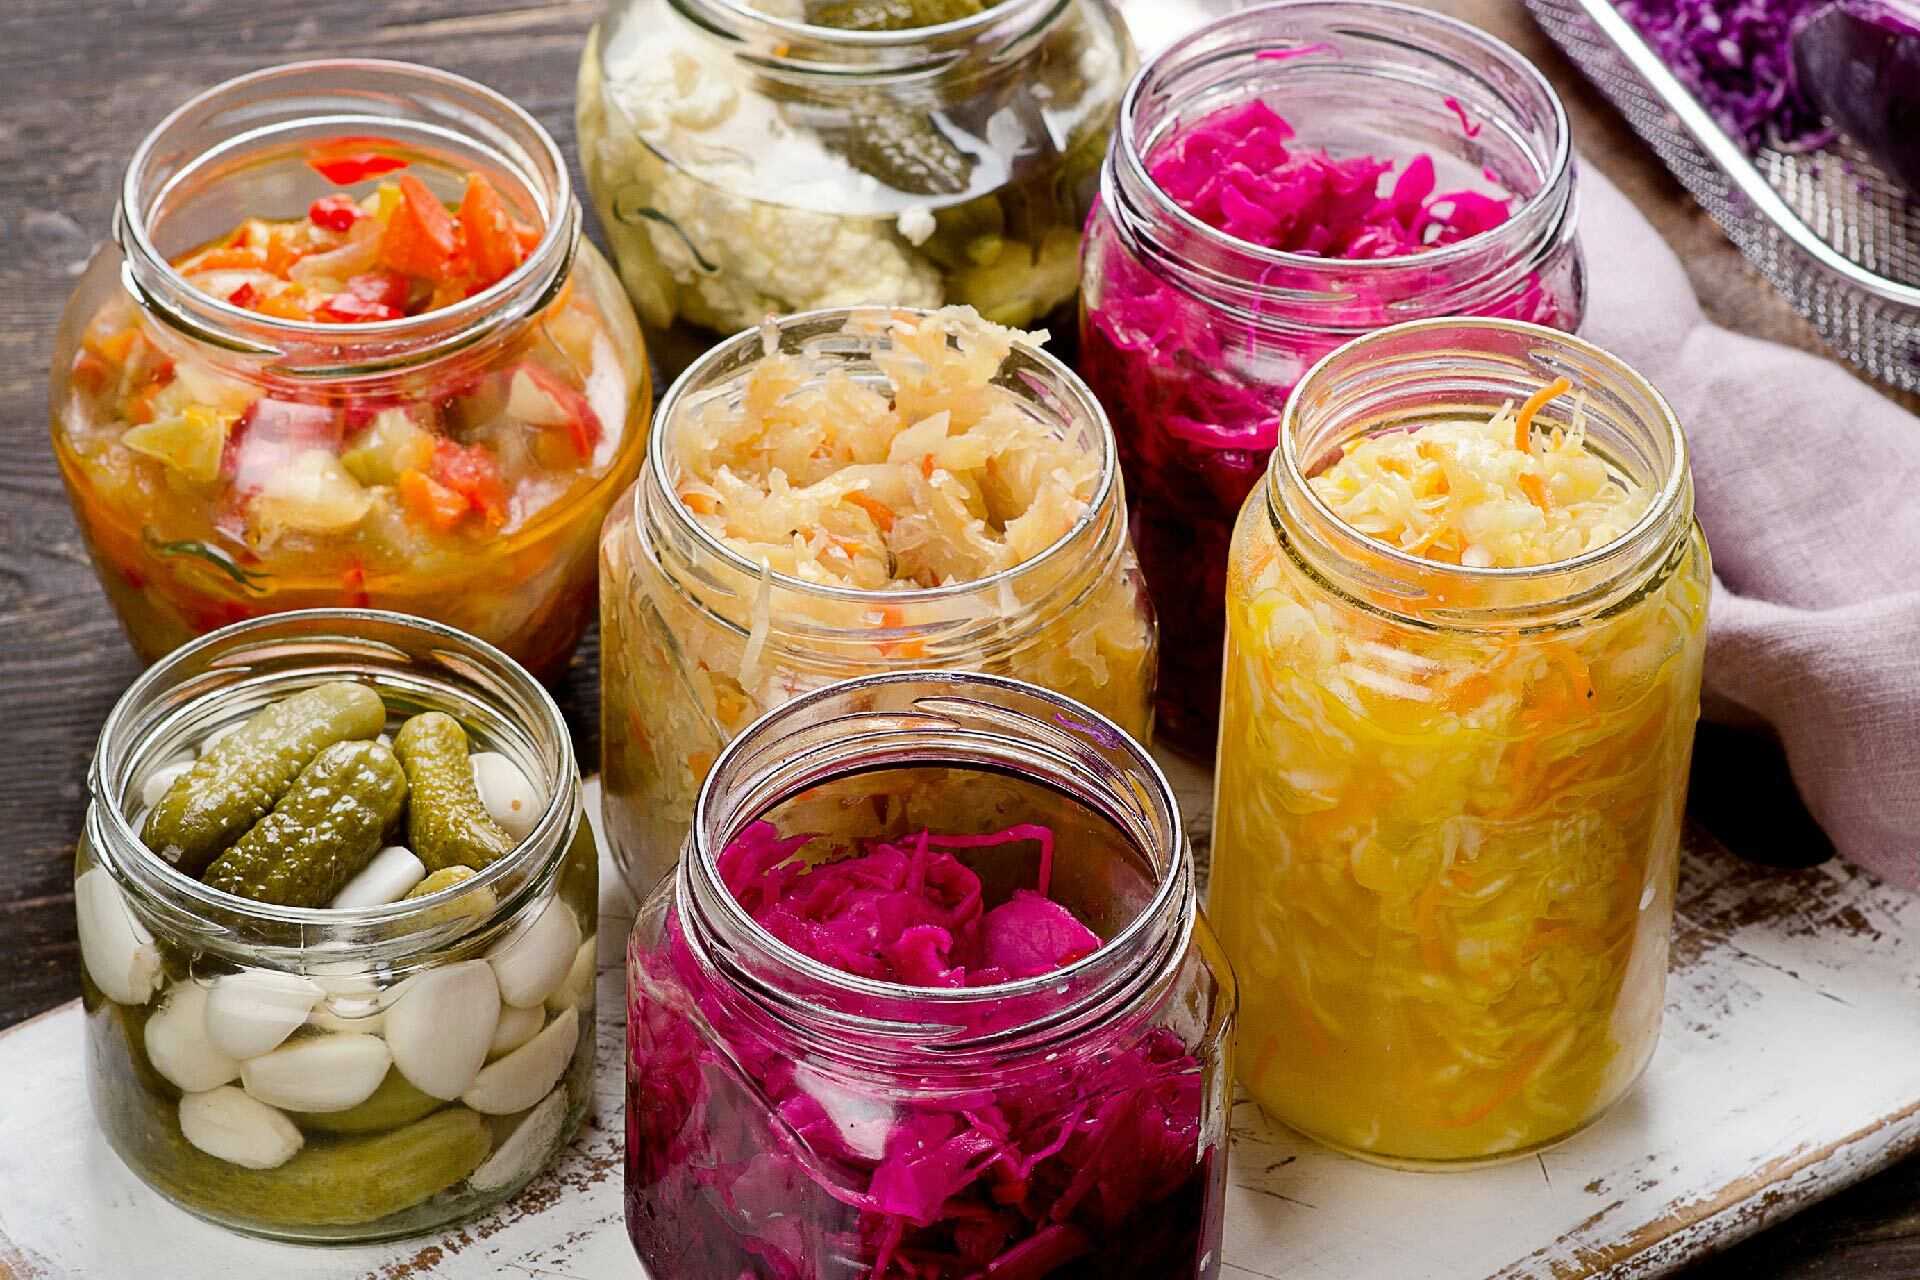 Fermented food in jars for gut health